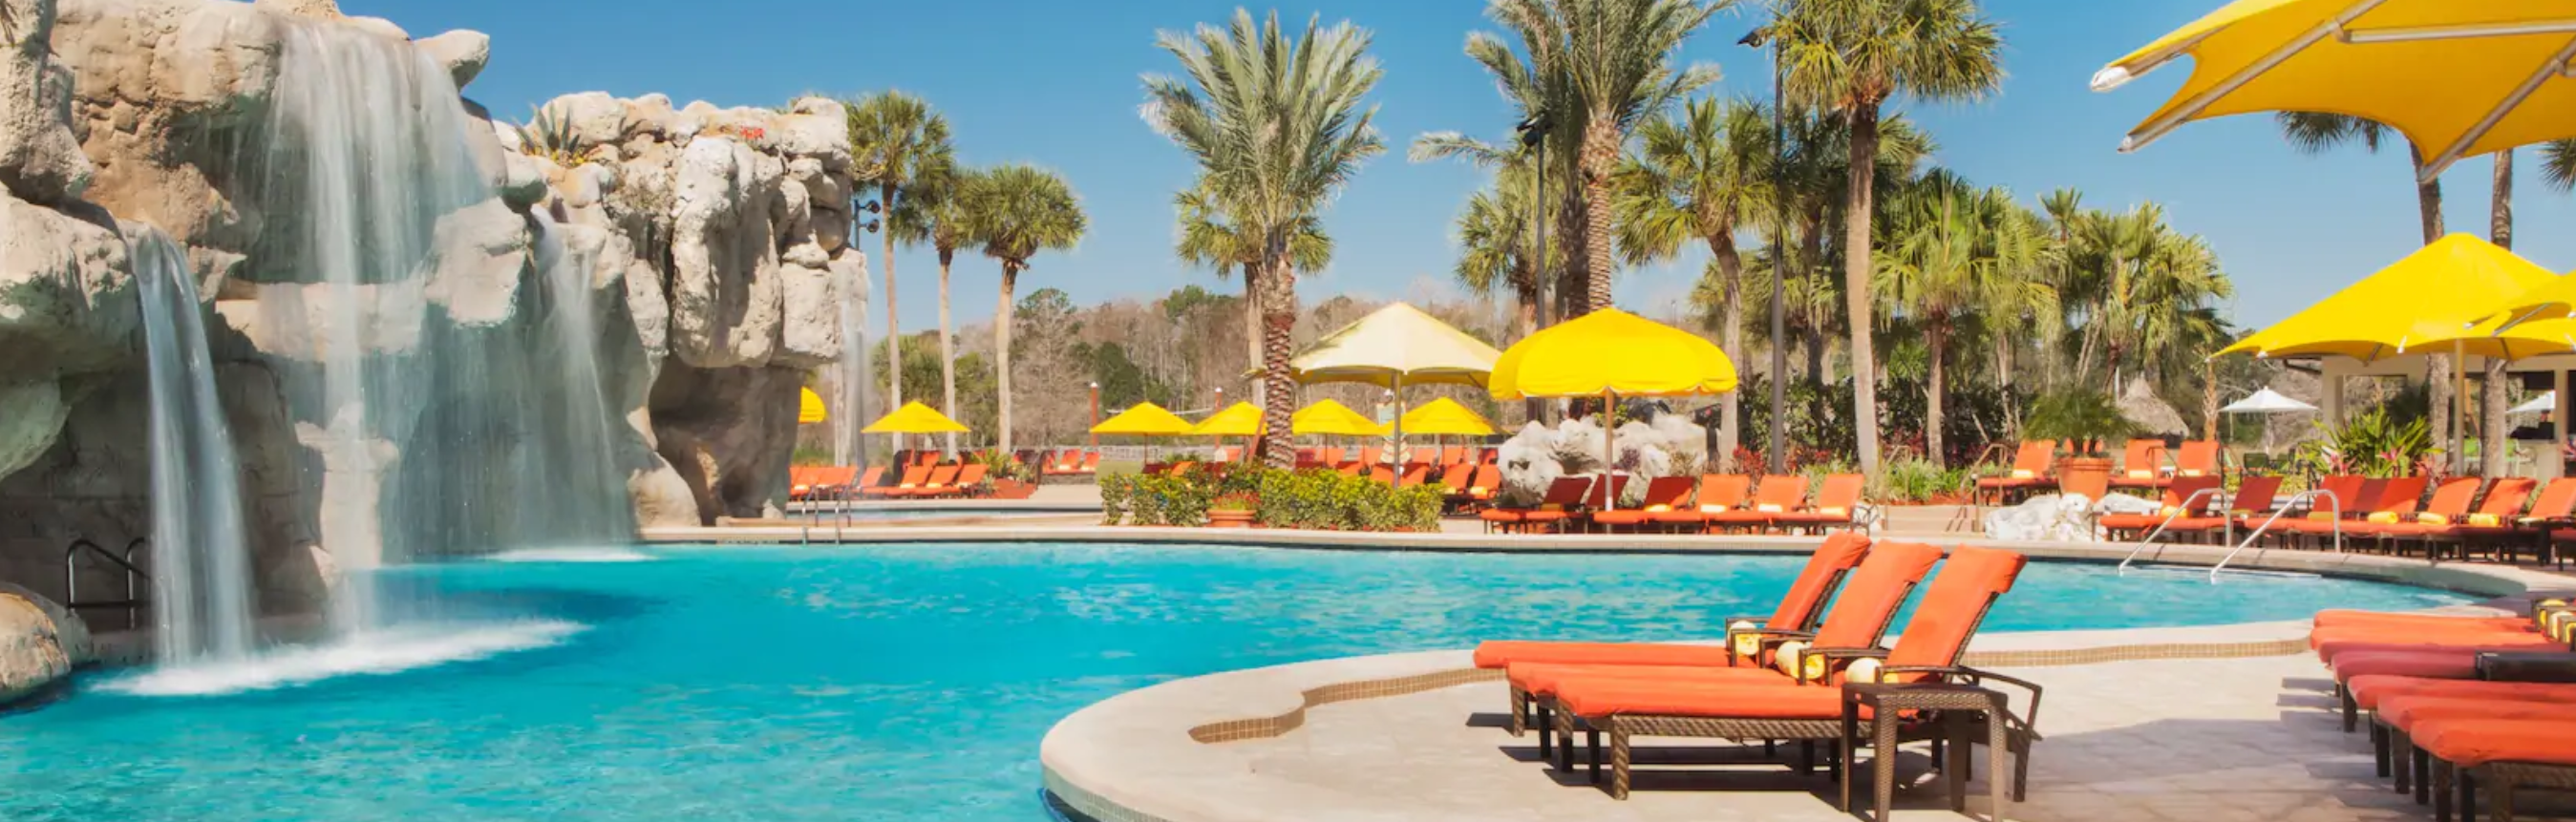 The Best Places To Stay In Orlando Florida For Your Disney Vacation 2021